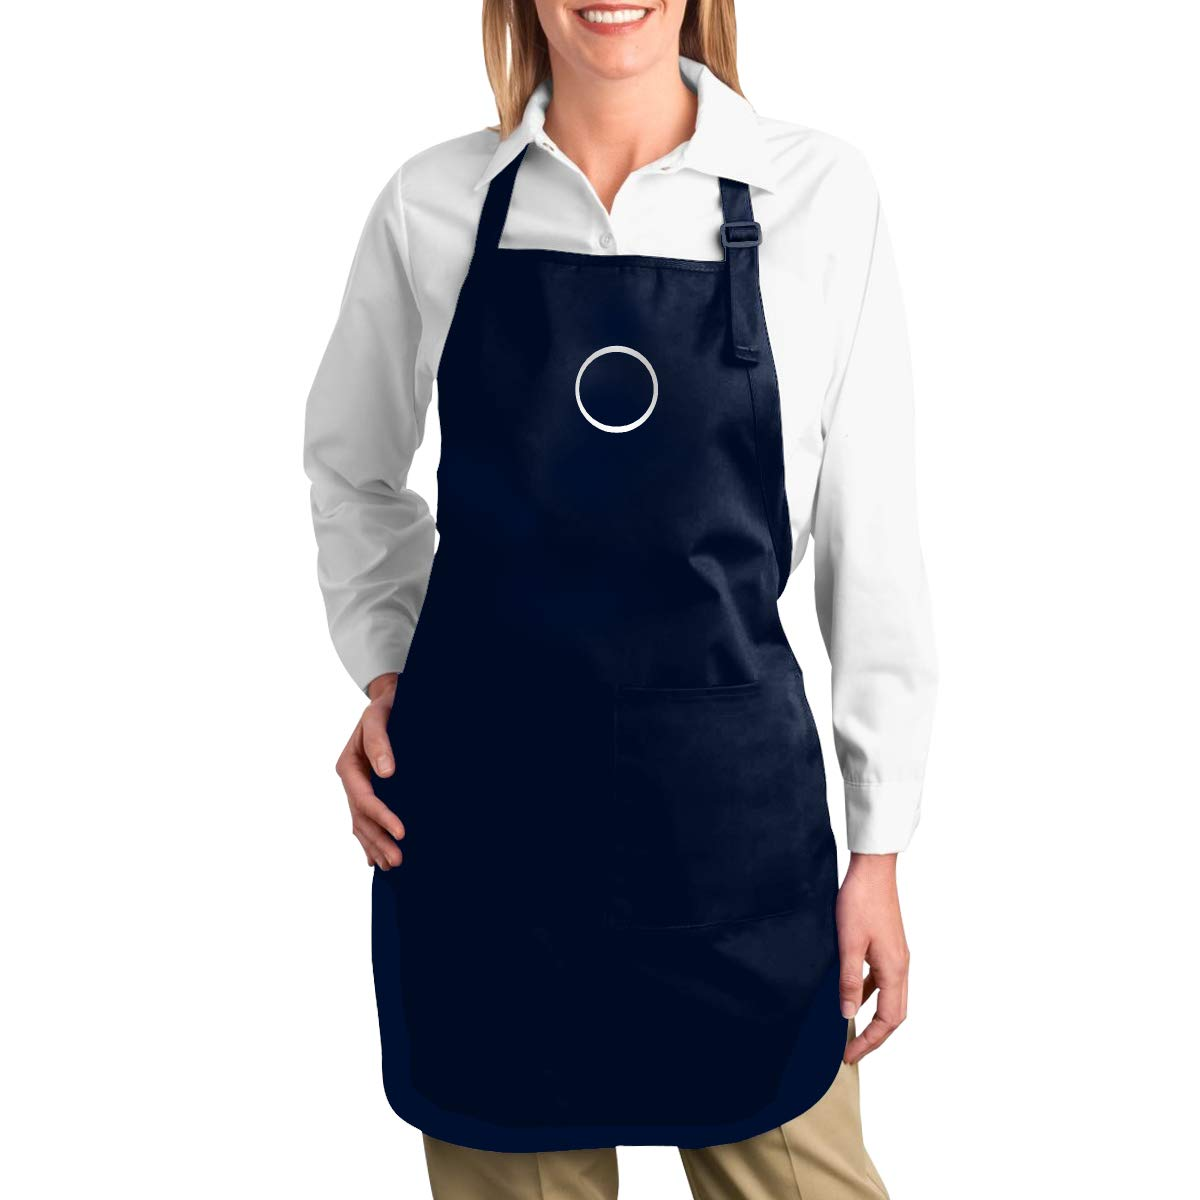 ANZIKEJI A Heavy Duty Canvas Work Apron,Tool Pockets, Back Straps Adjustable